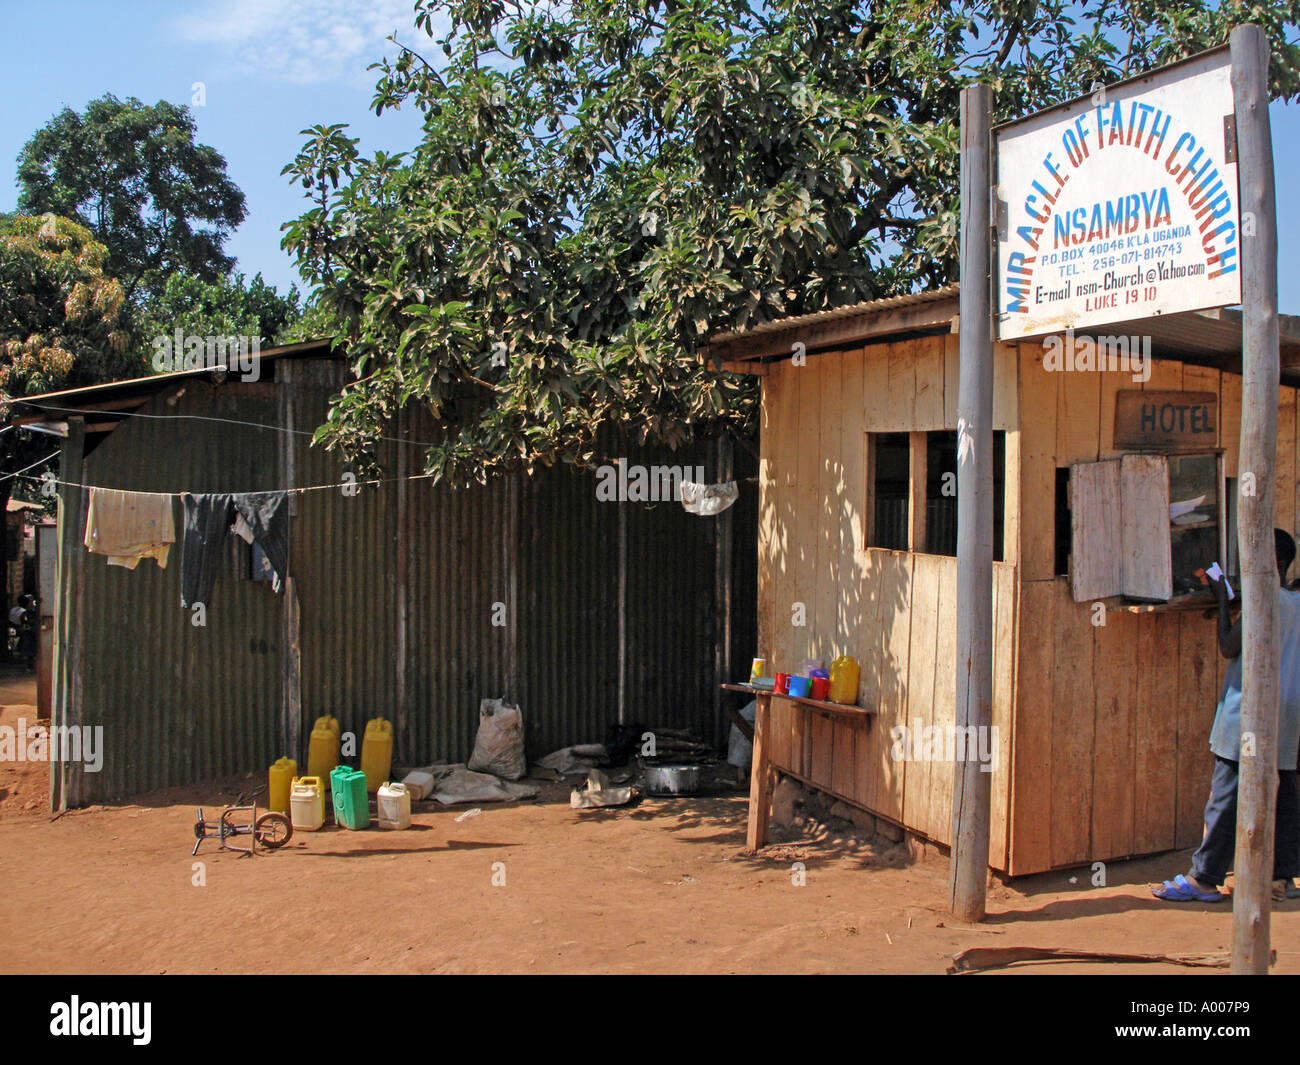 Miracle of Faith Church at Nsambya, Kampala, Uganda - Stock Image